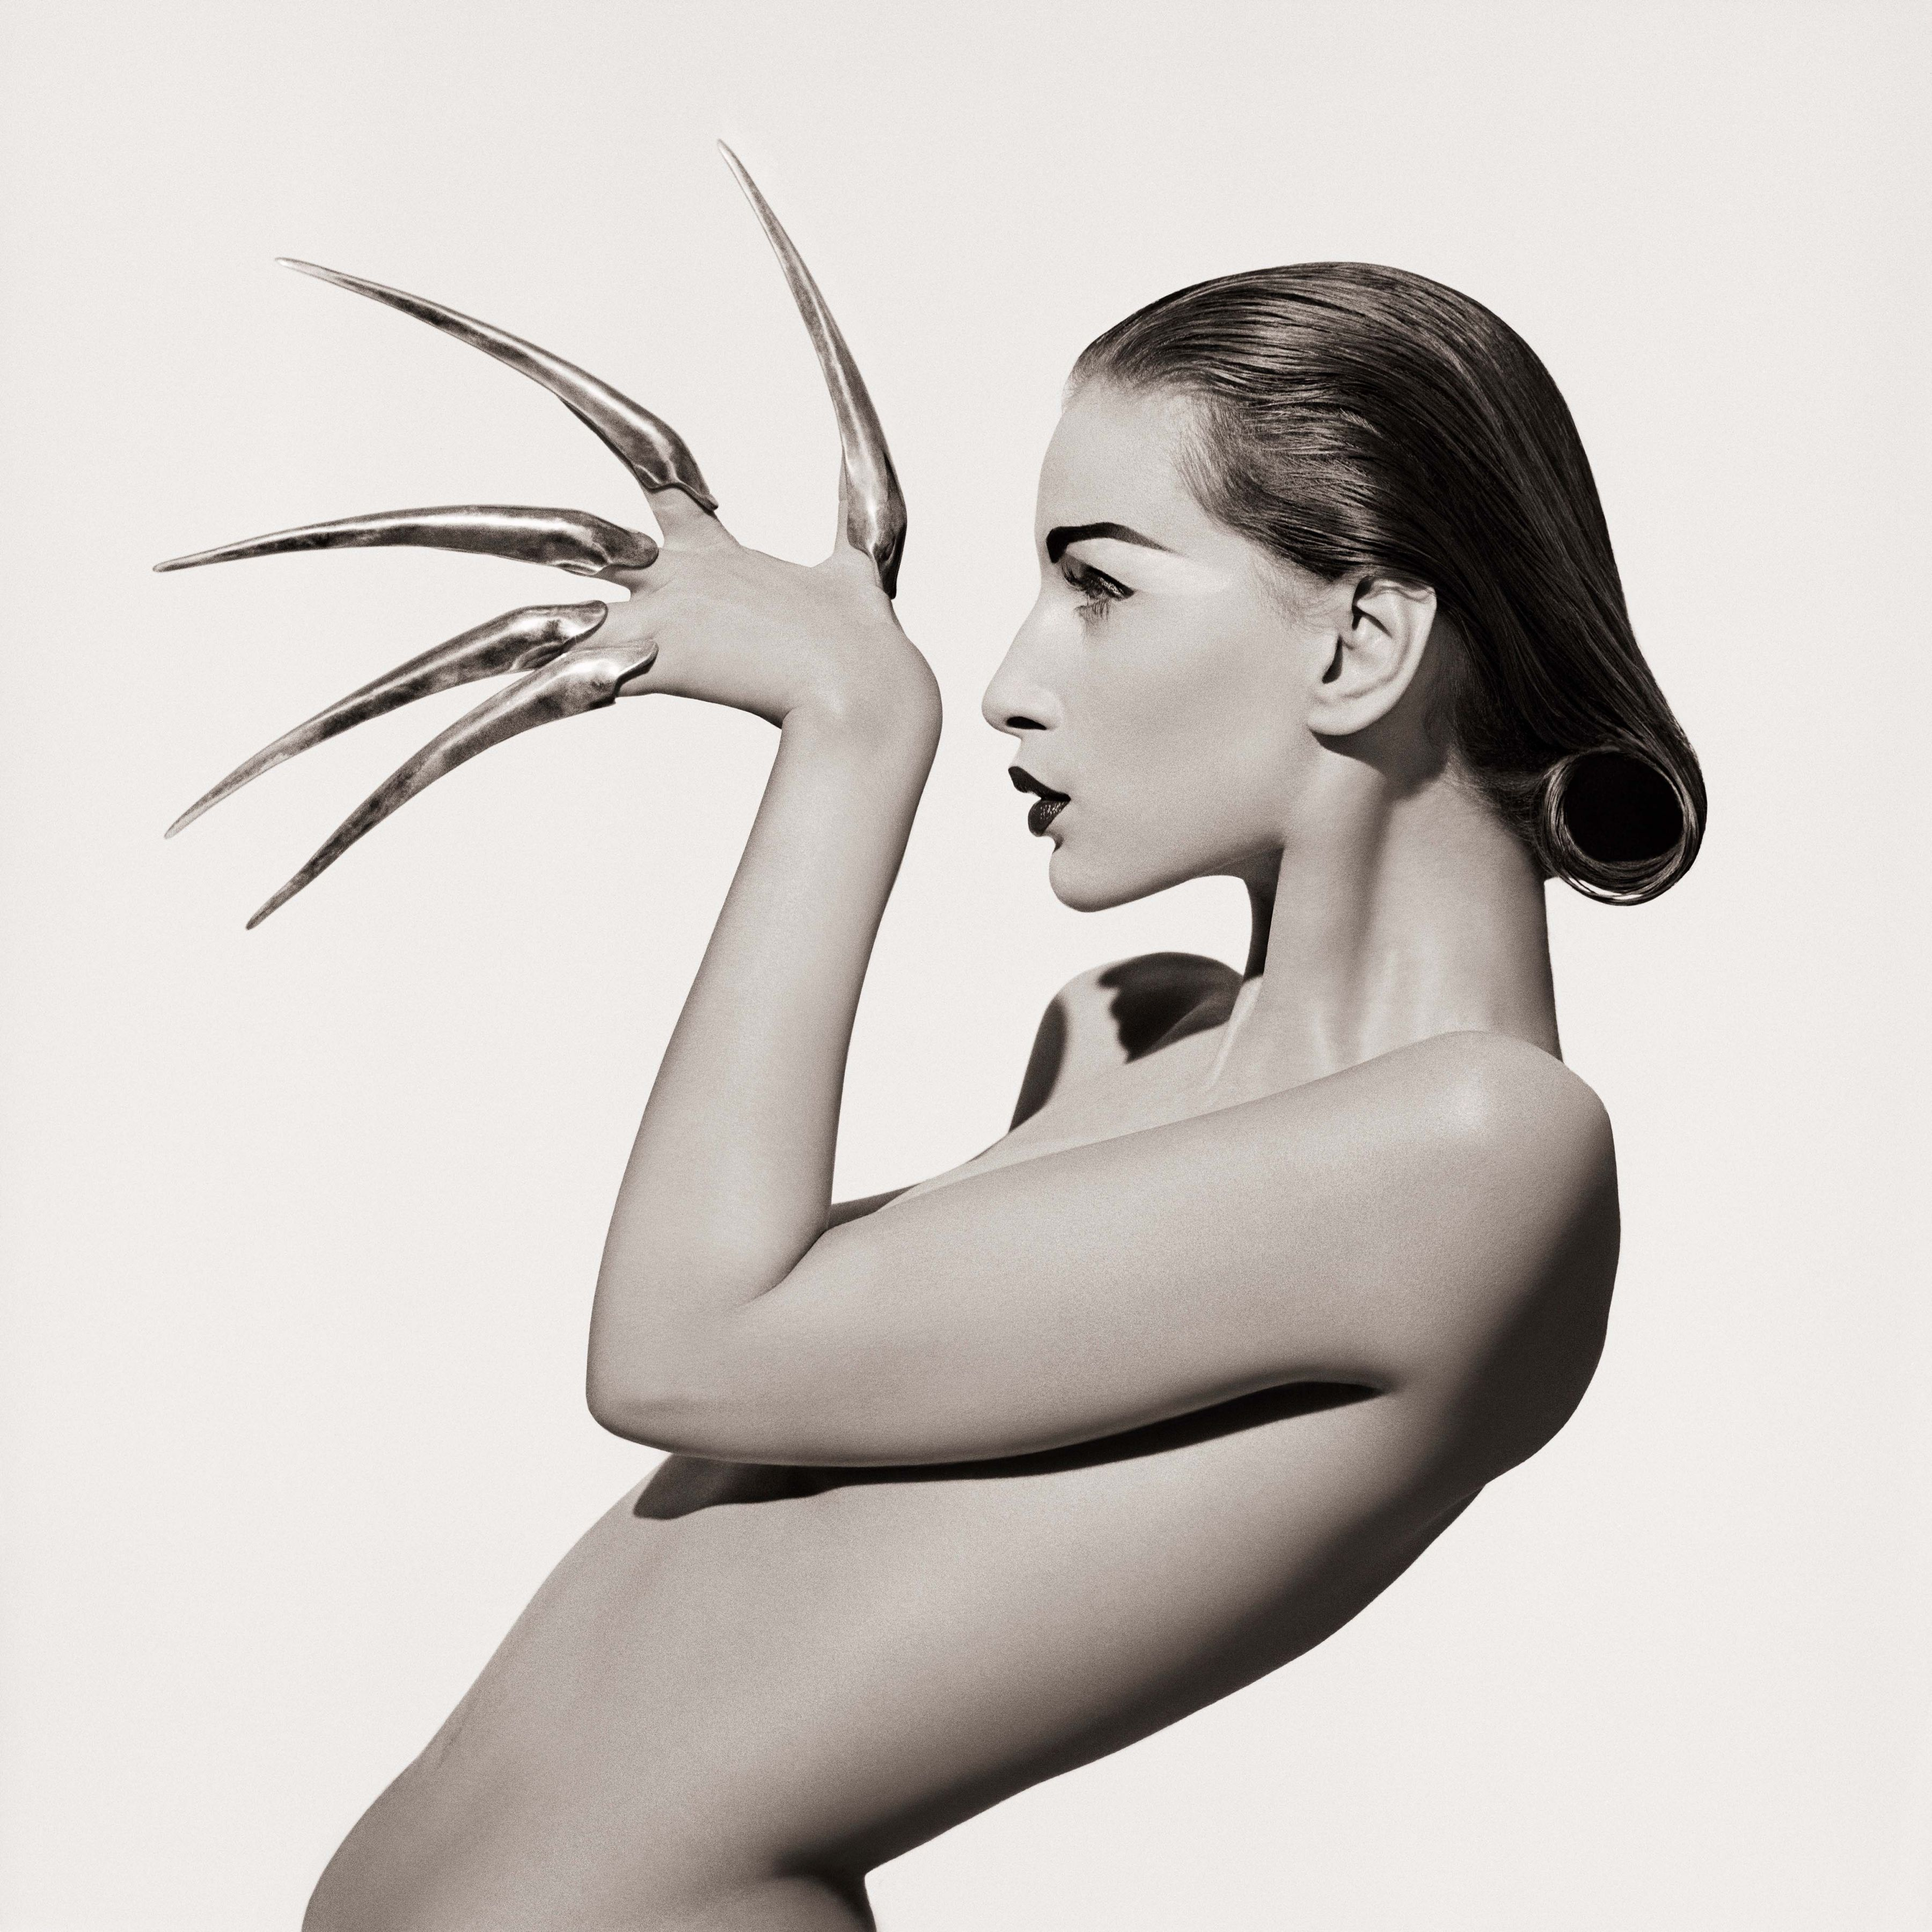 Aly, Claw Hand - The Surreal Thing, Series, New York, 1987, Archival Pigment Print